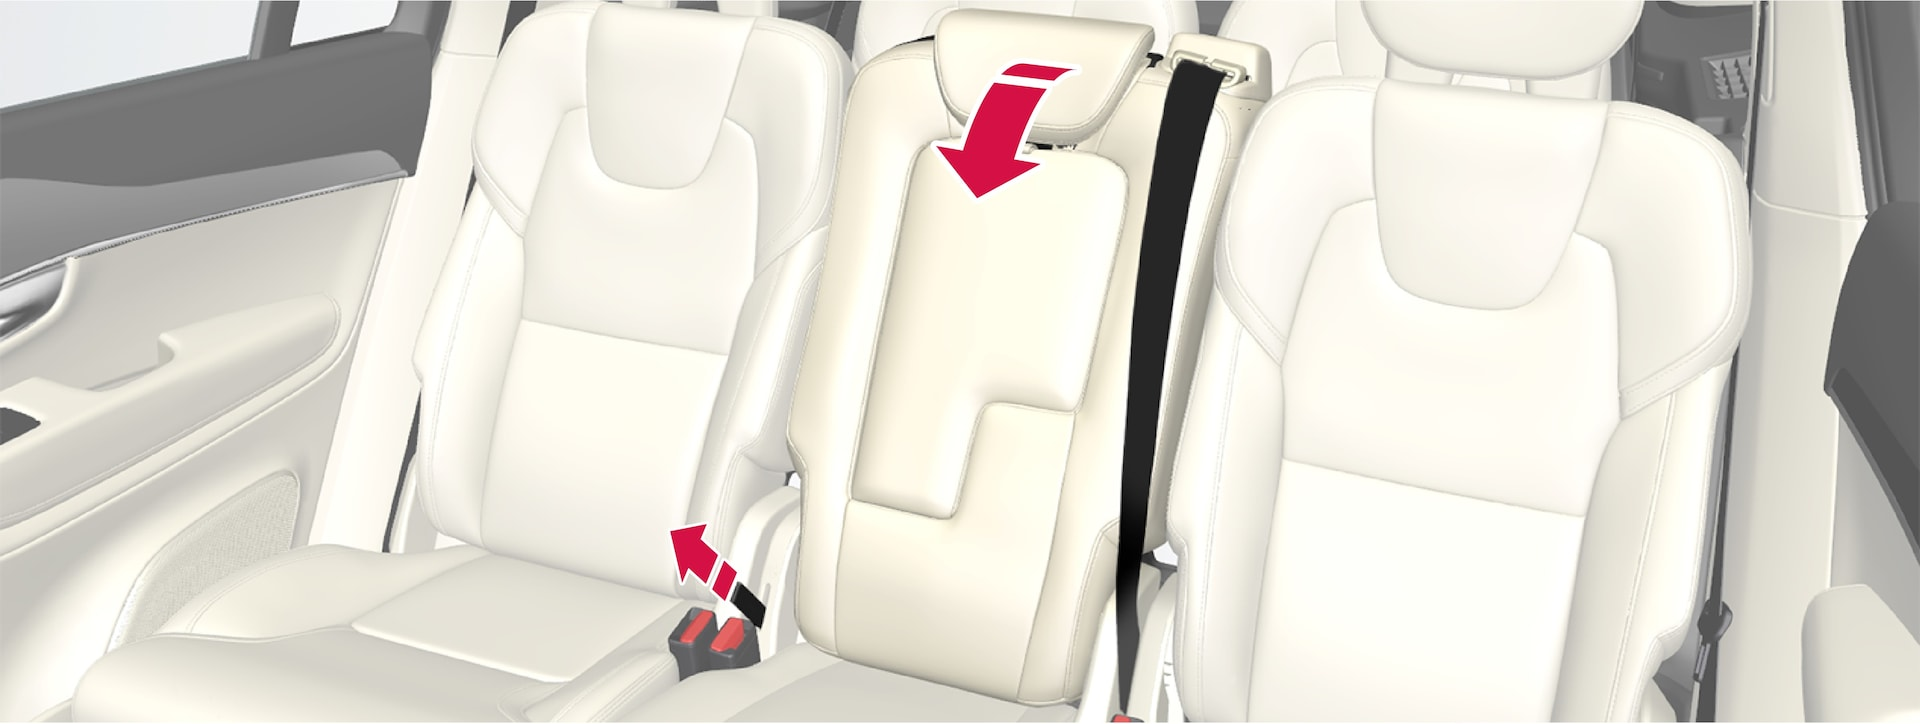 P5-1507-2nd seat row- Folding center seat with strap